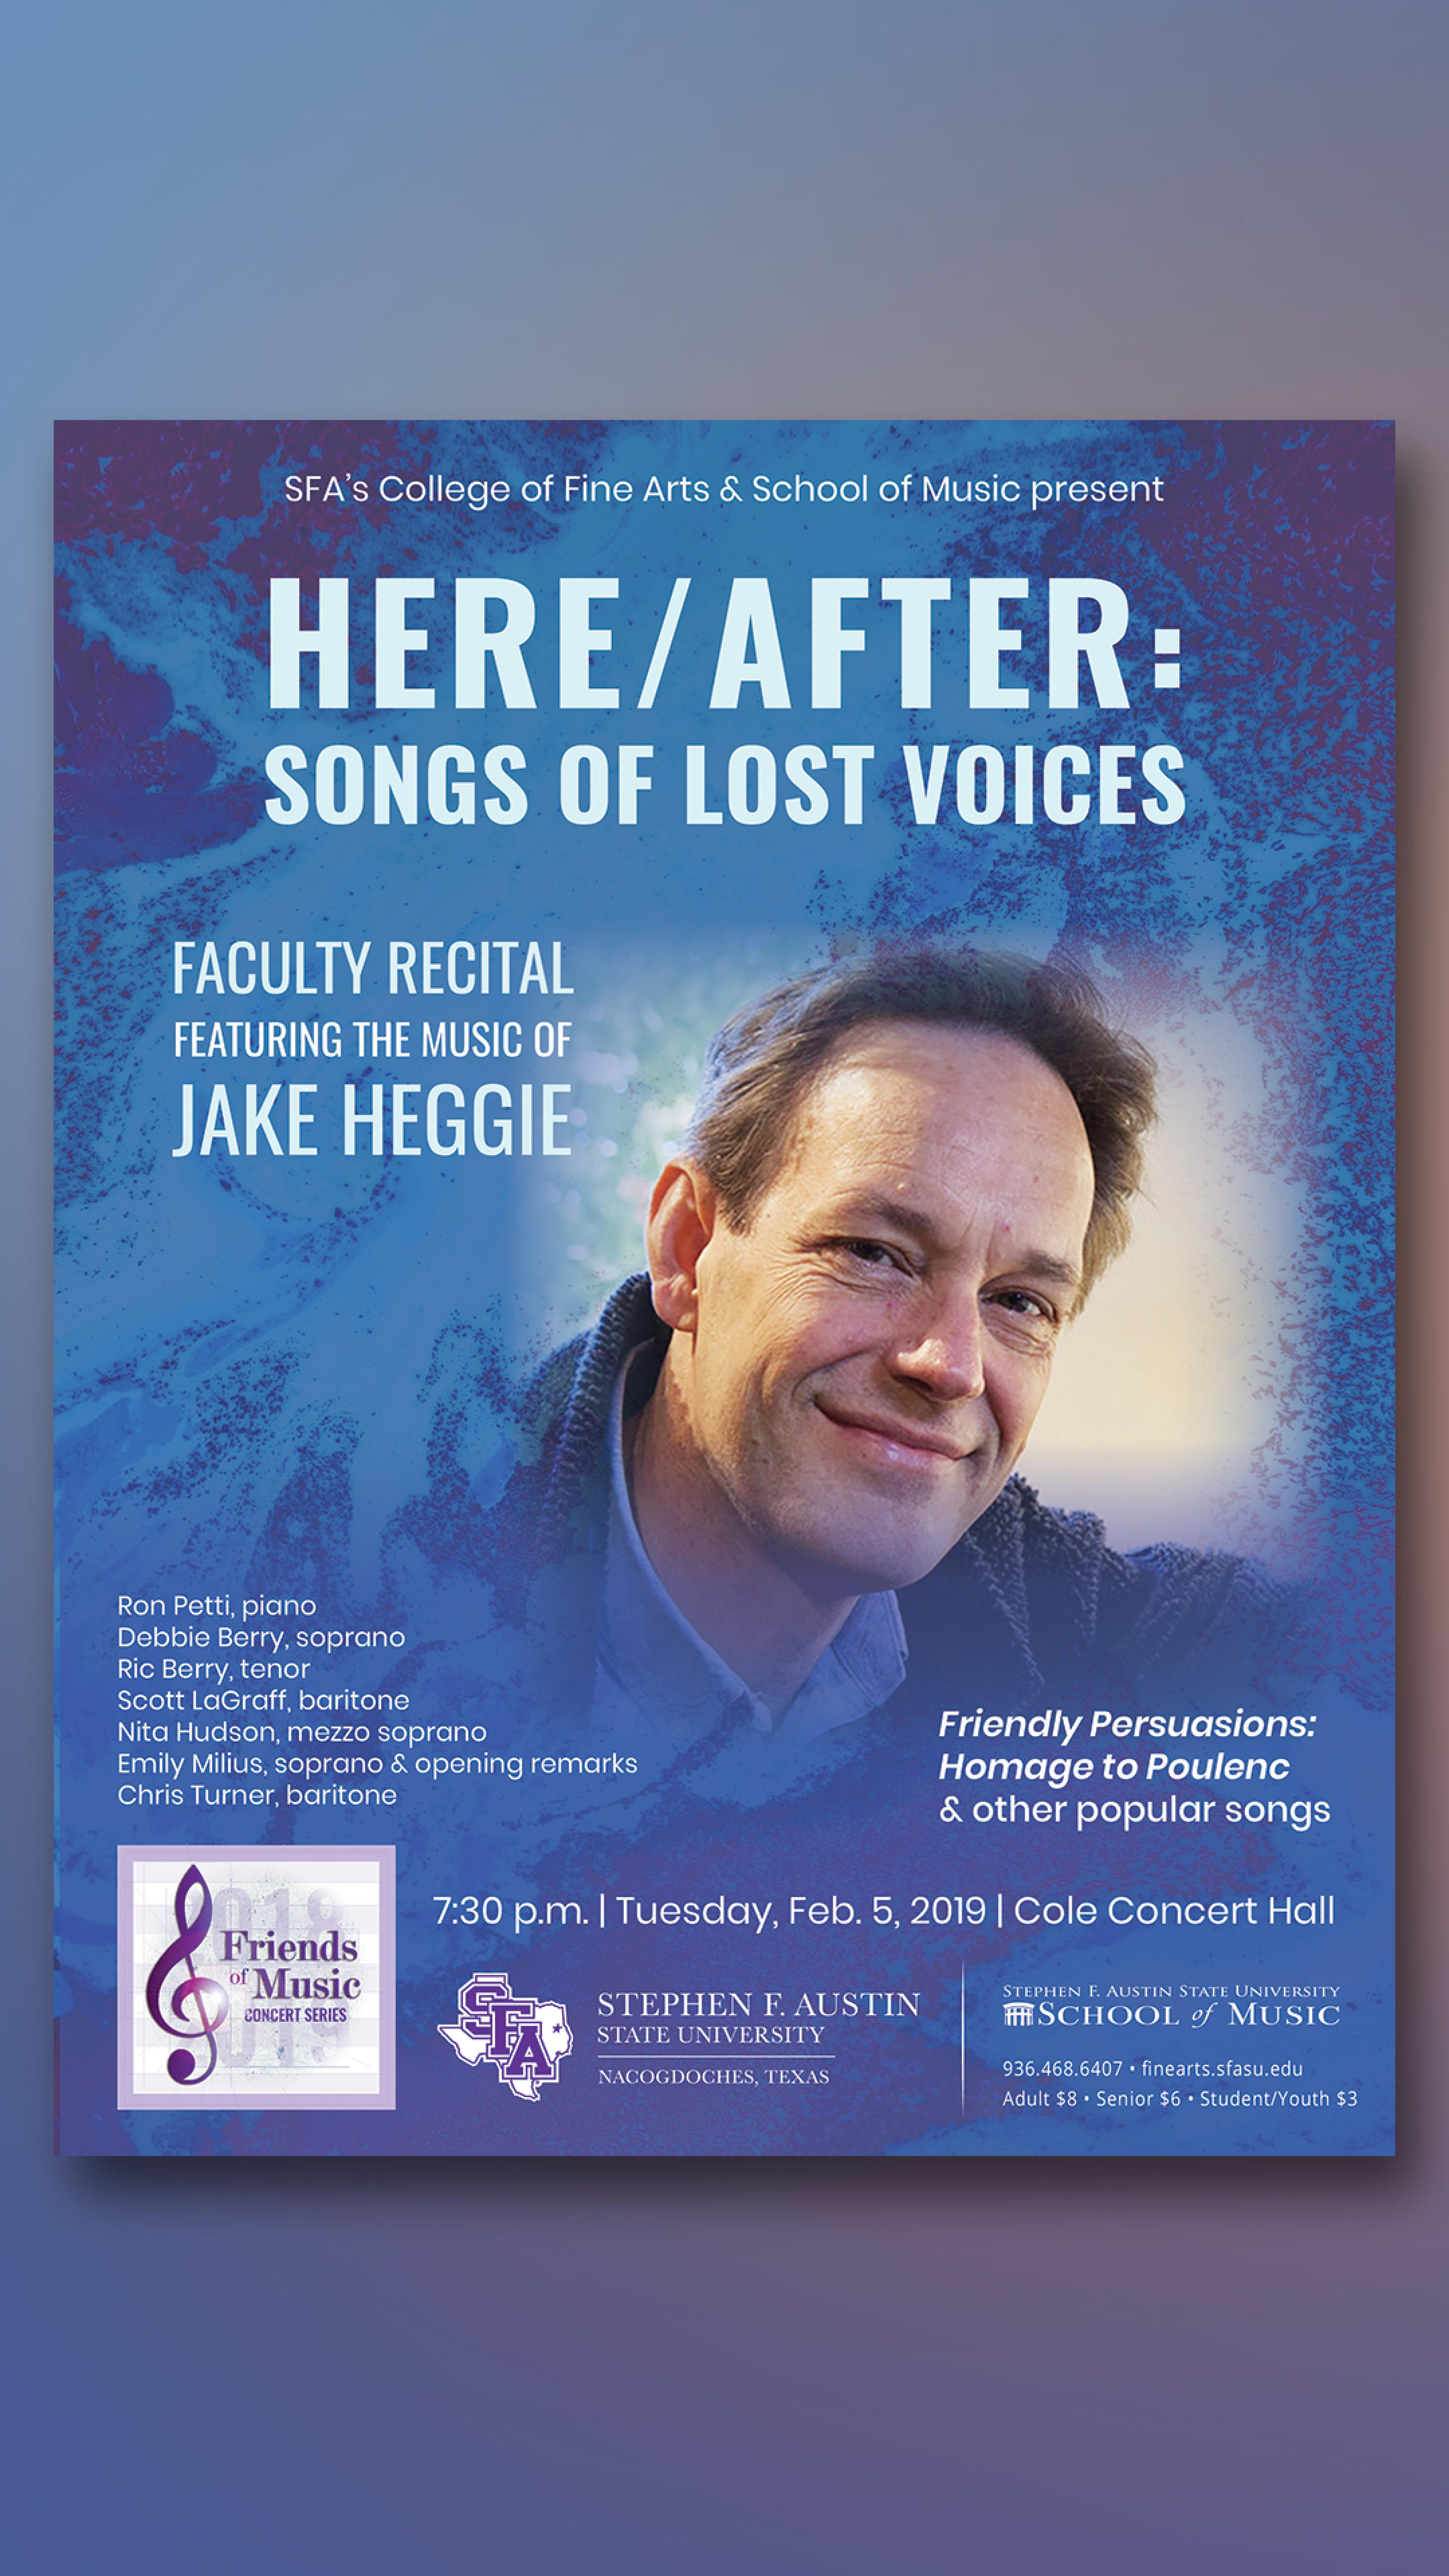 publicity image for Jake Heggie – Here/After: The Songs of Lost Voices